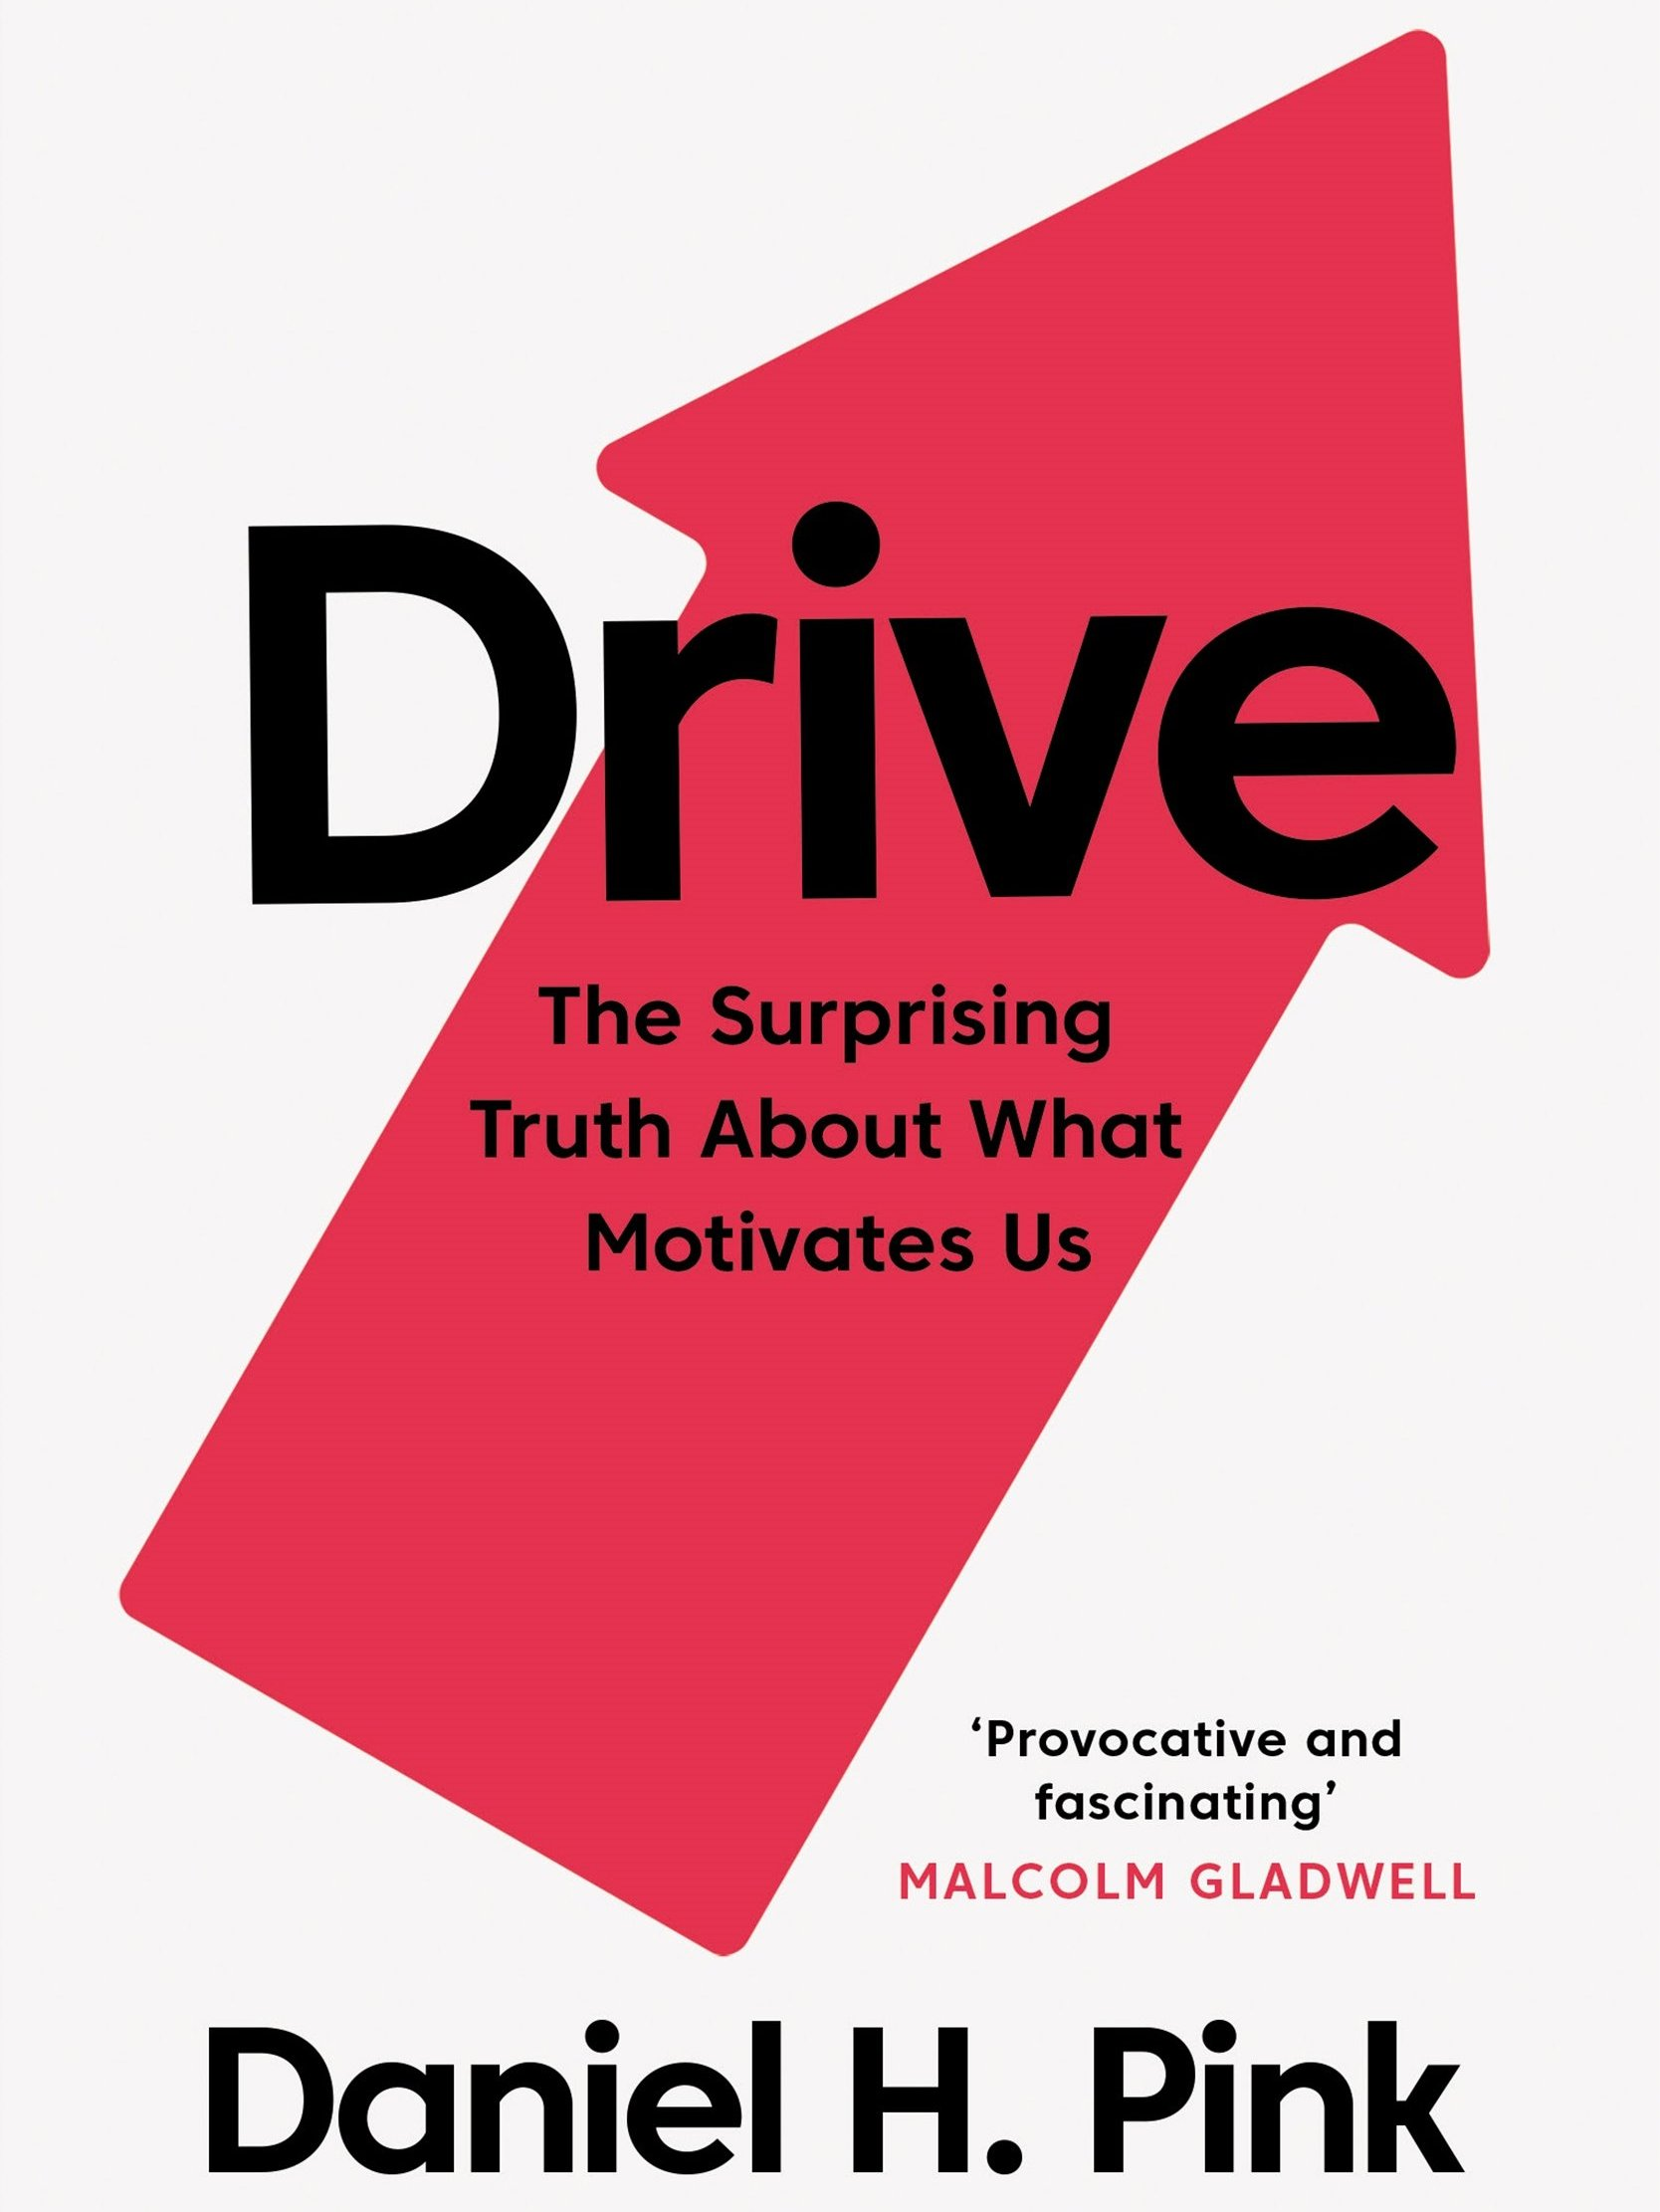 Drive: The Surprising Truth About What Motivates Us - Daniel H. Pink - quotes, rating, reviews, where to buy